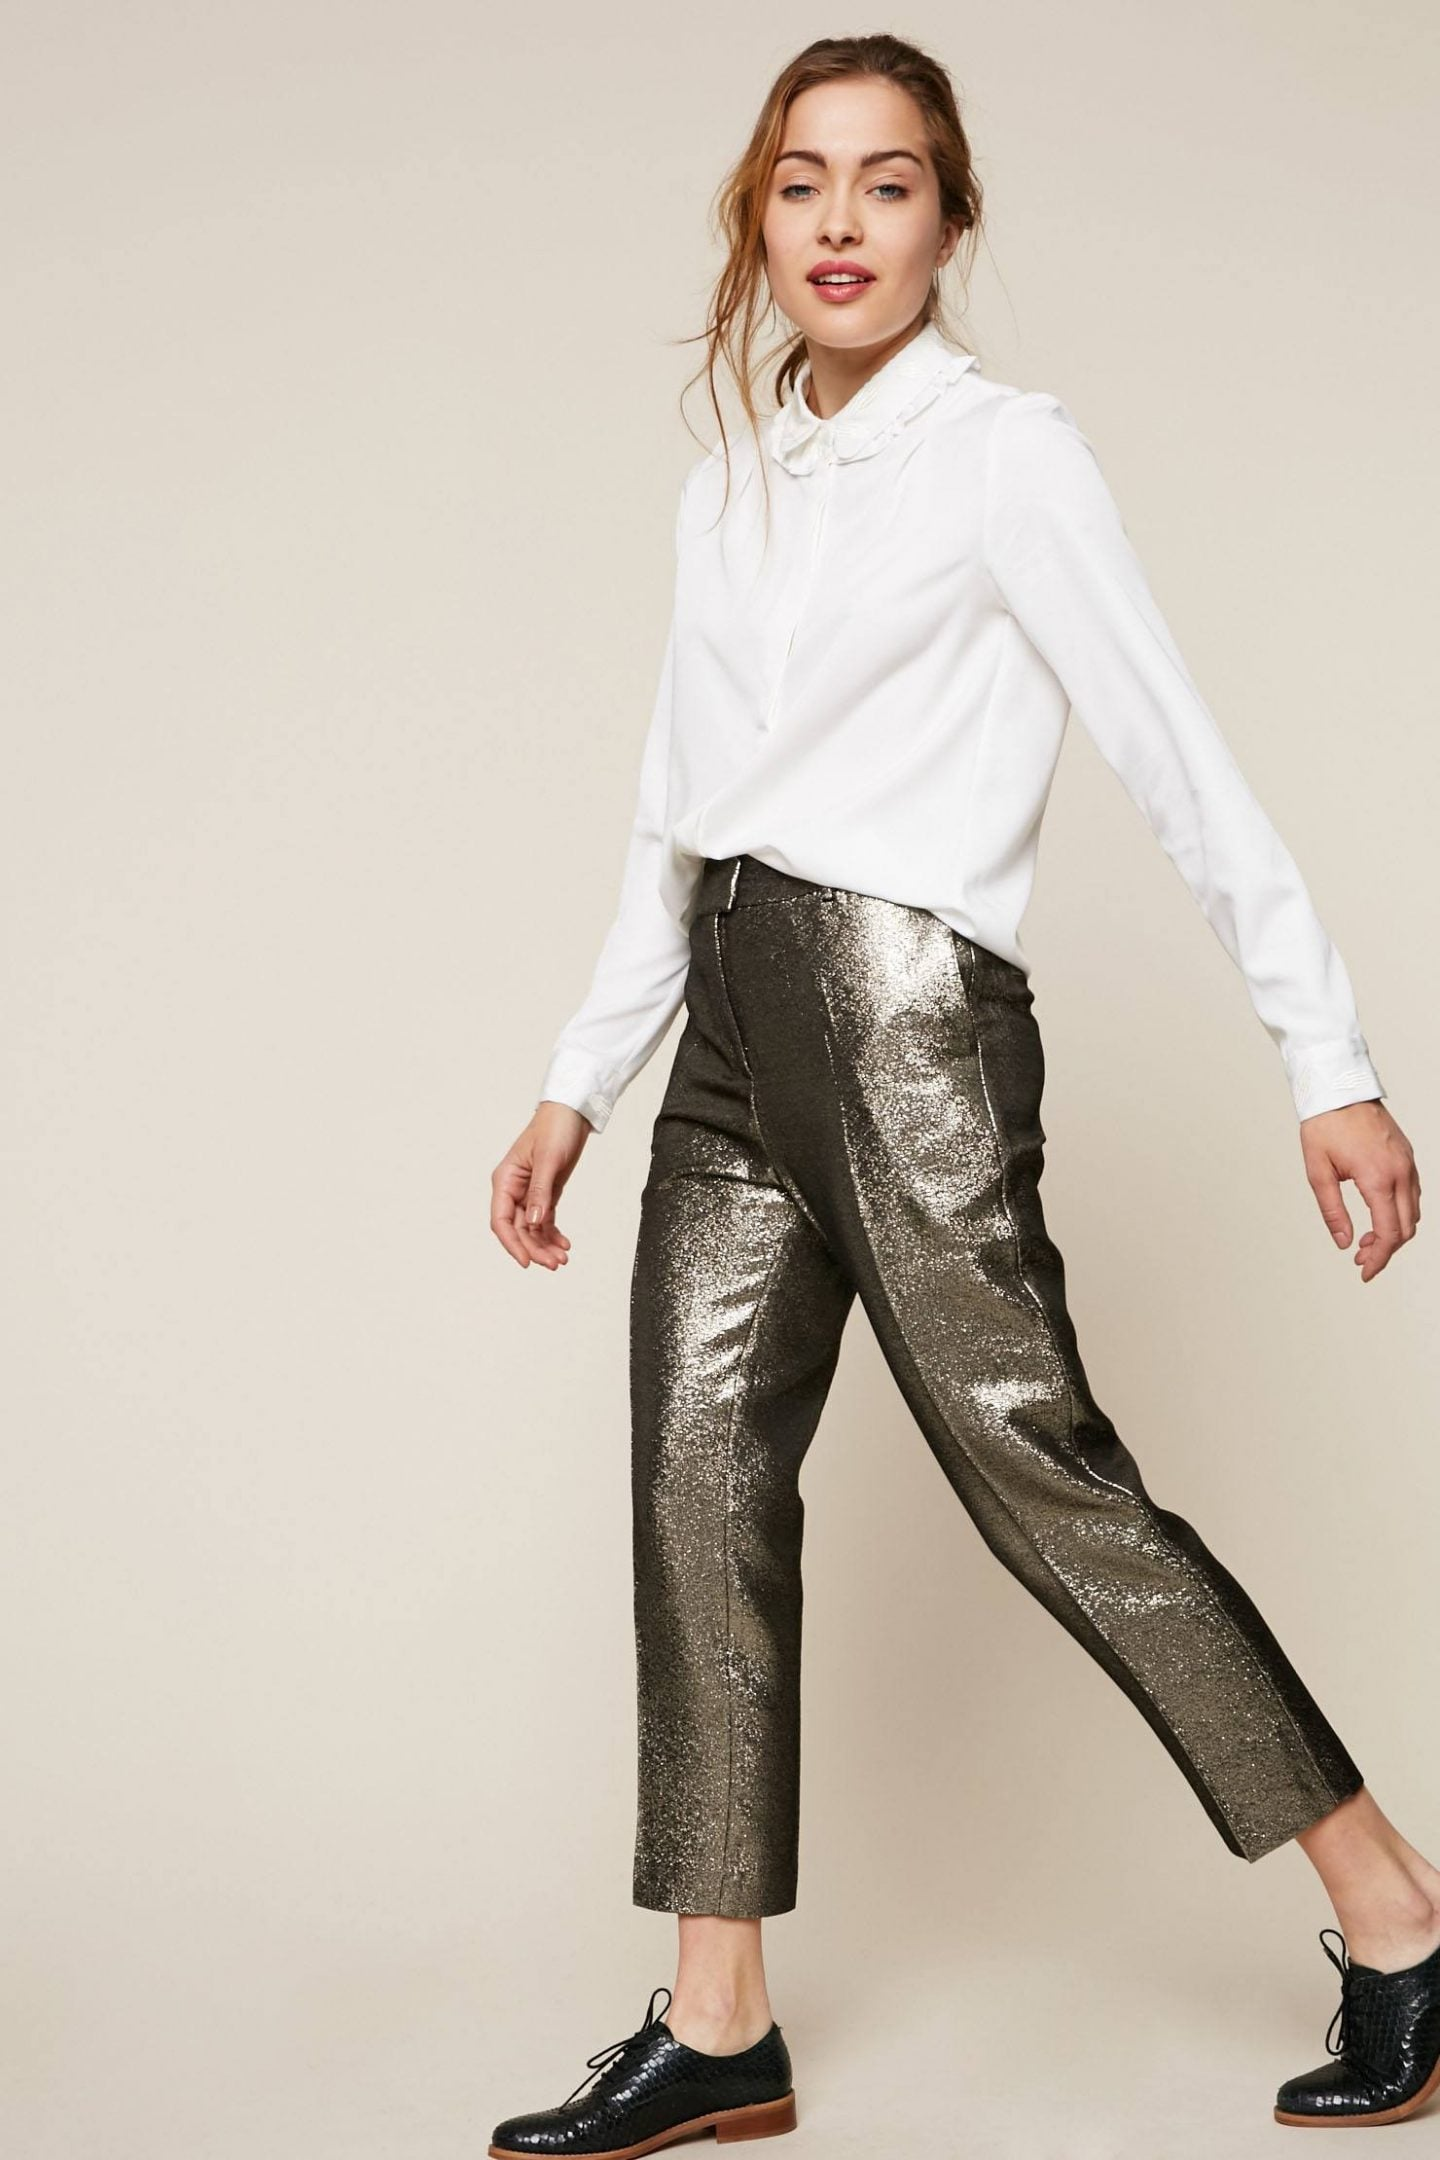 pantalon brillant